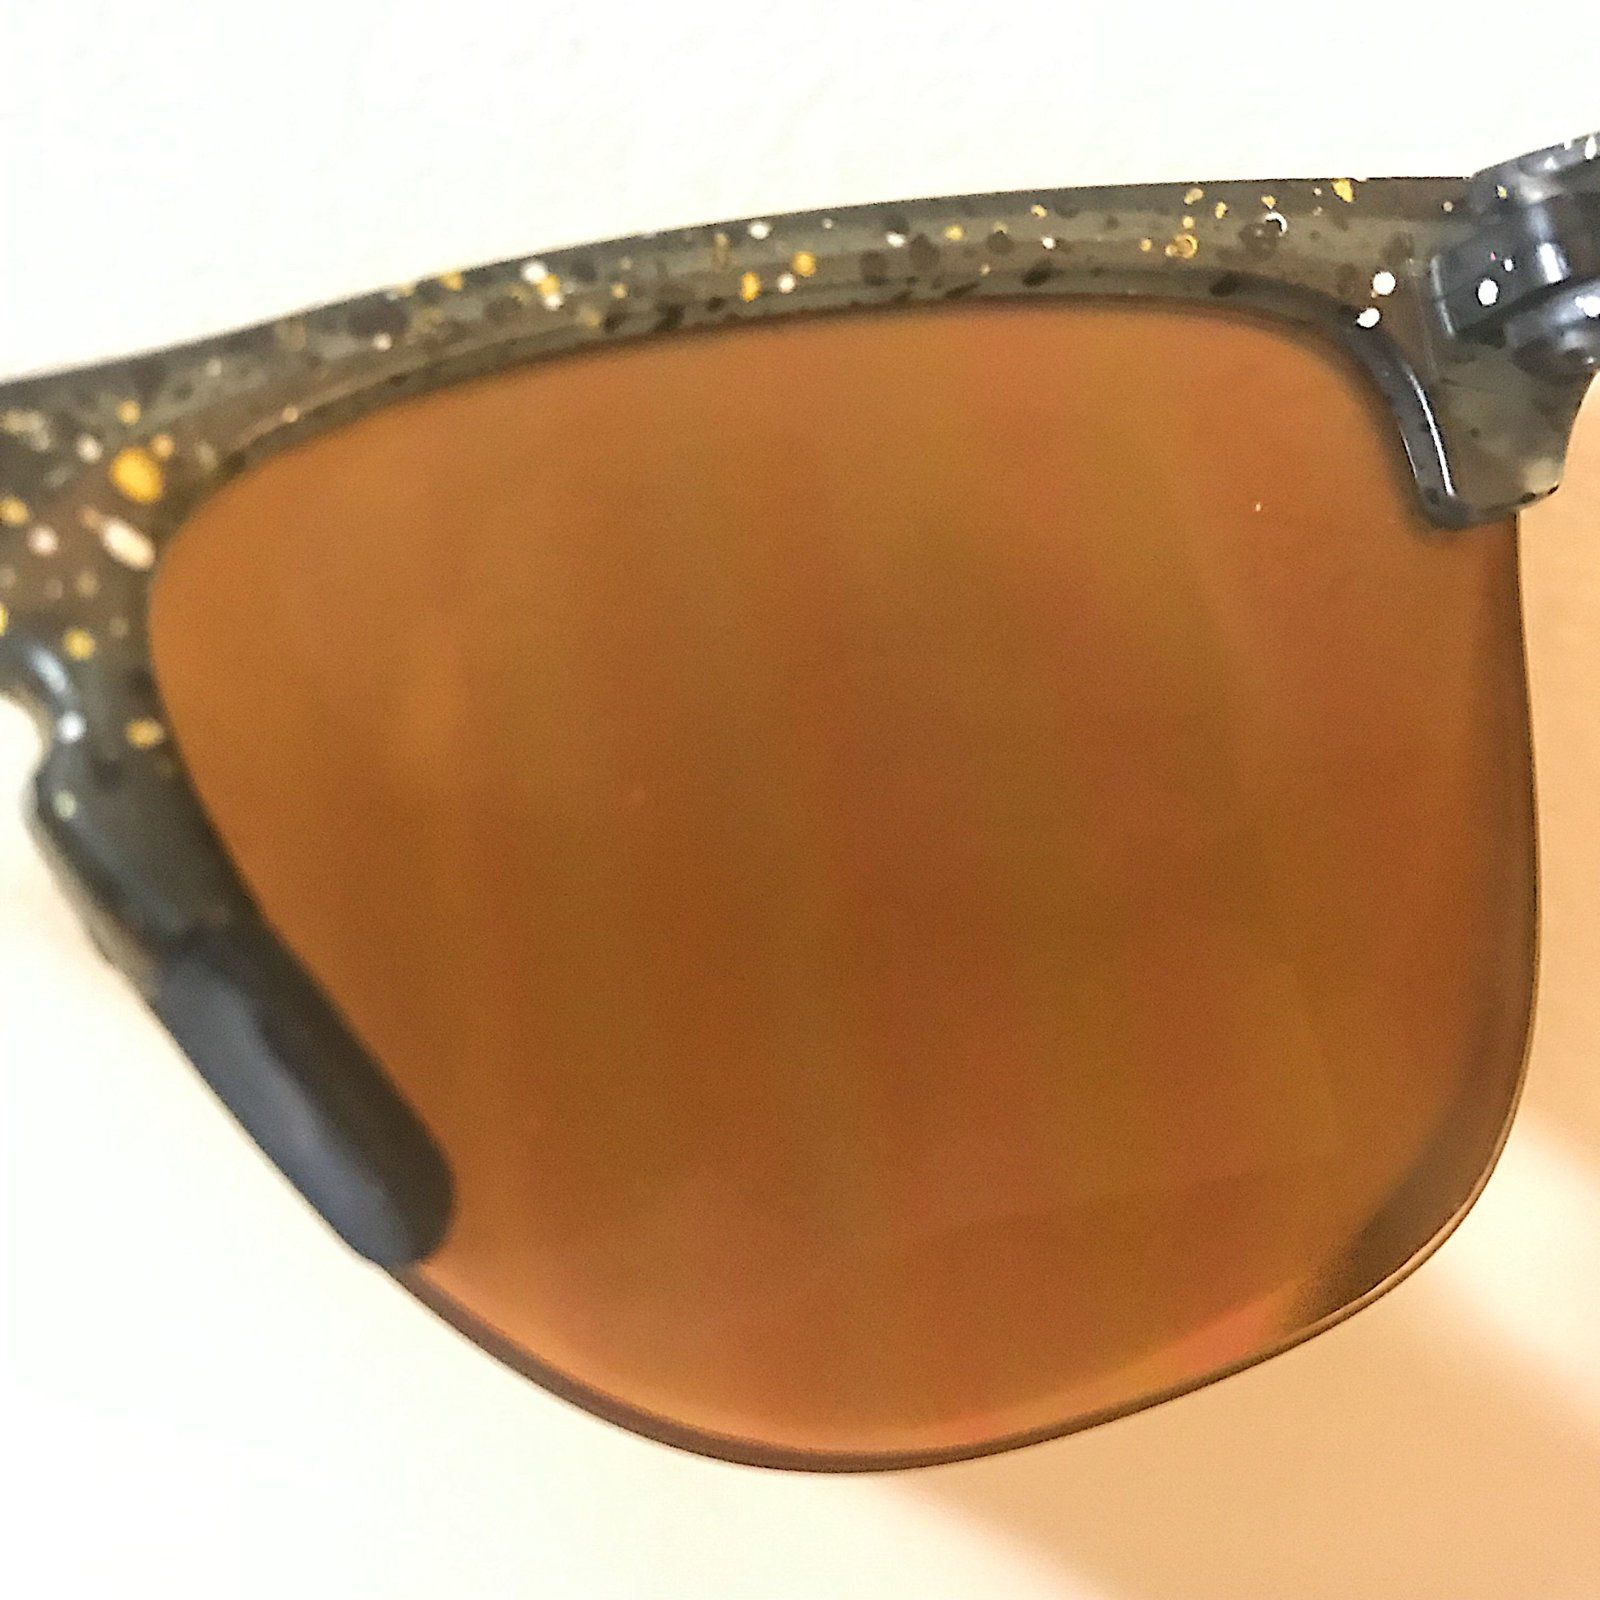 """Window"" In Multi-Tinted Lenses (Like Prizm Deep Water Polarized) - 0A7F0B34-5964-42FE-8037-D7C35A7D9A5C.jpeg"